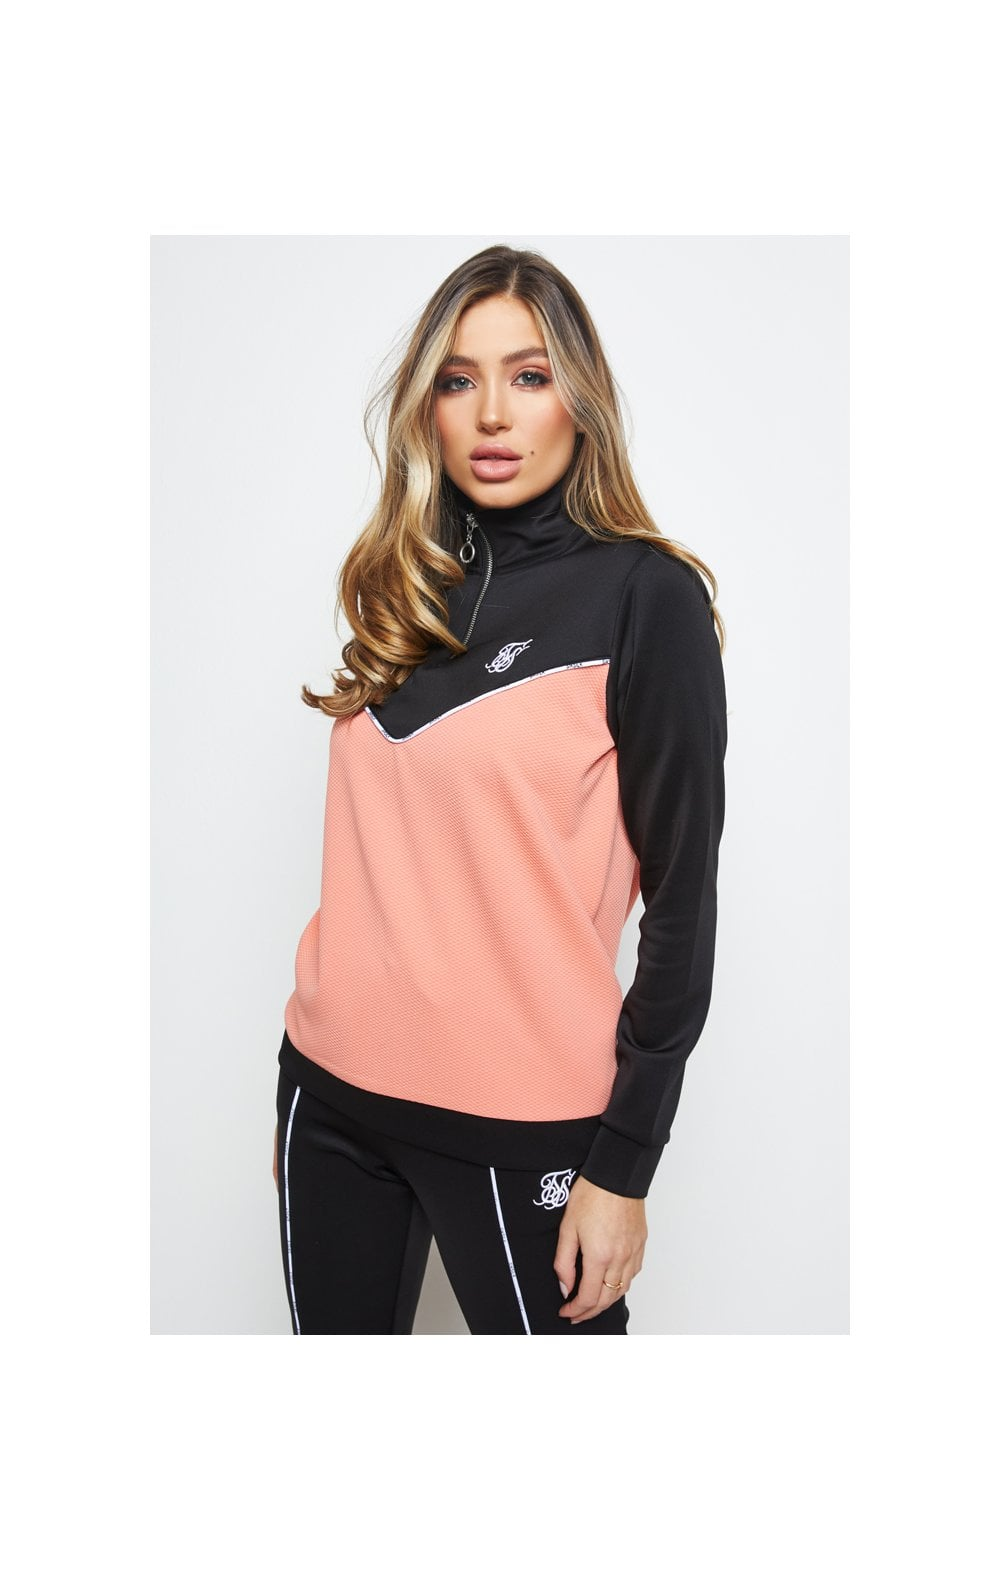 SikSilk Duality Quarter Zip Track Top - Black & Coral (1)